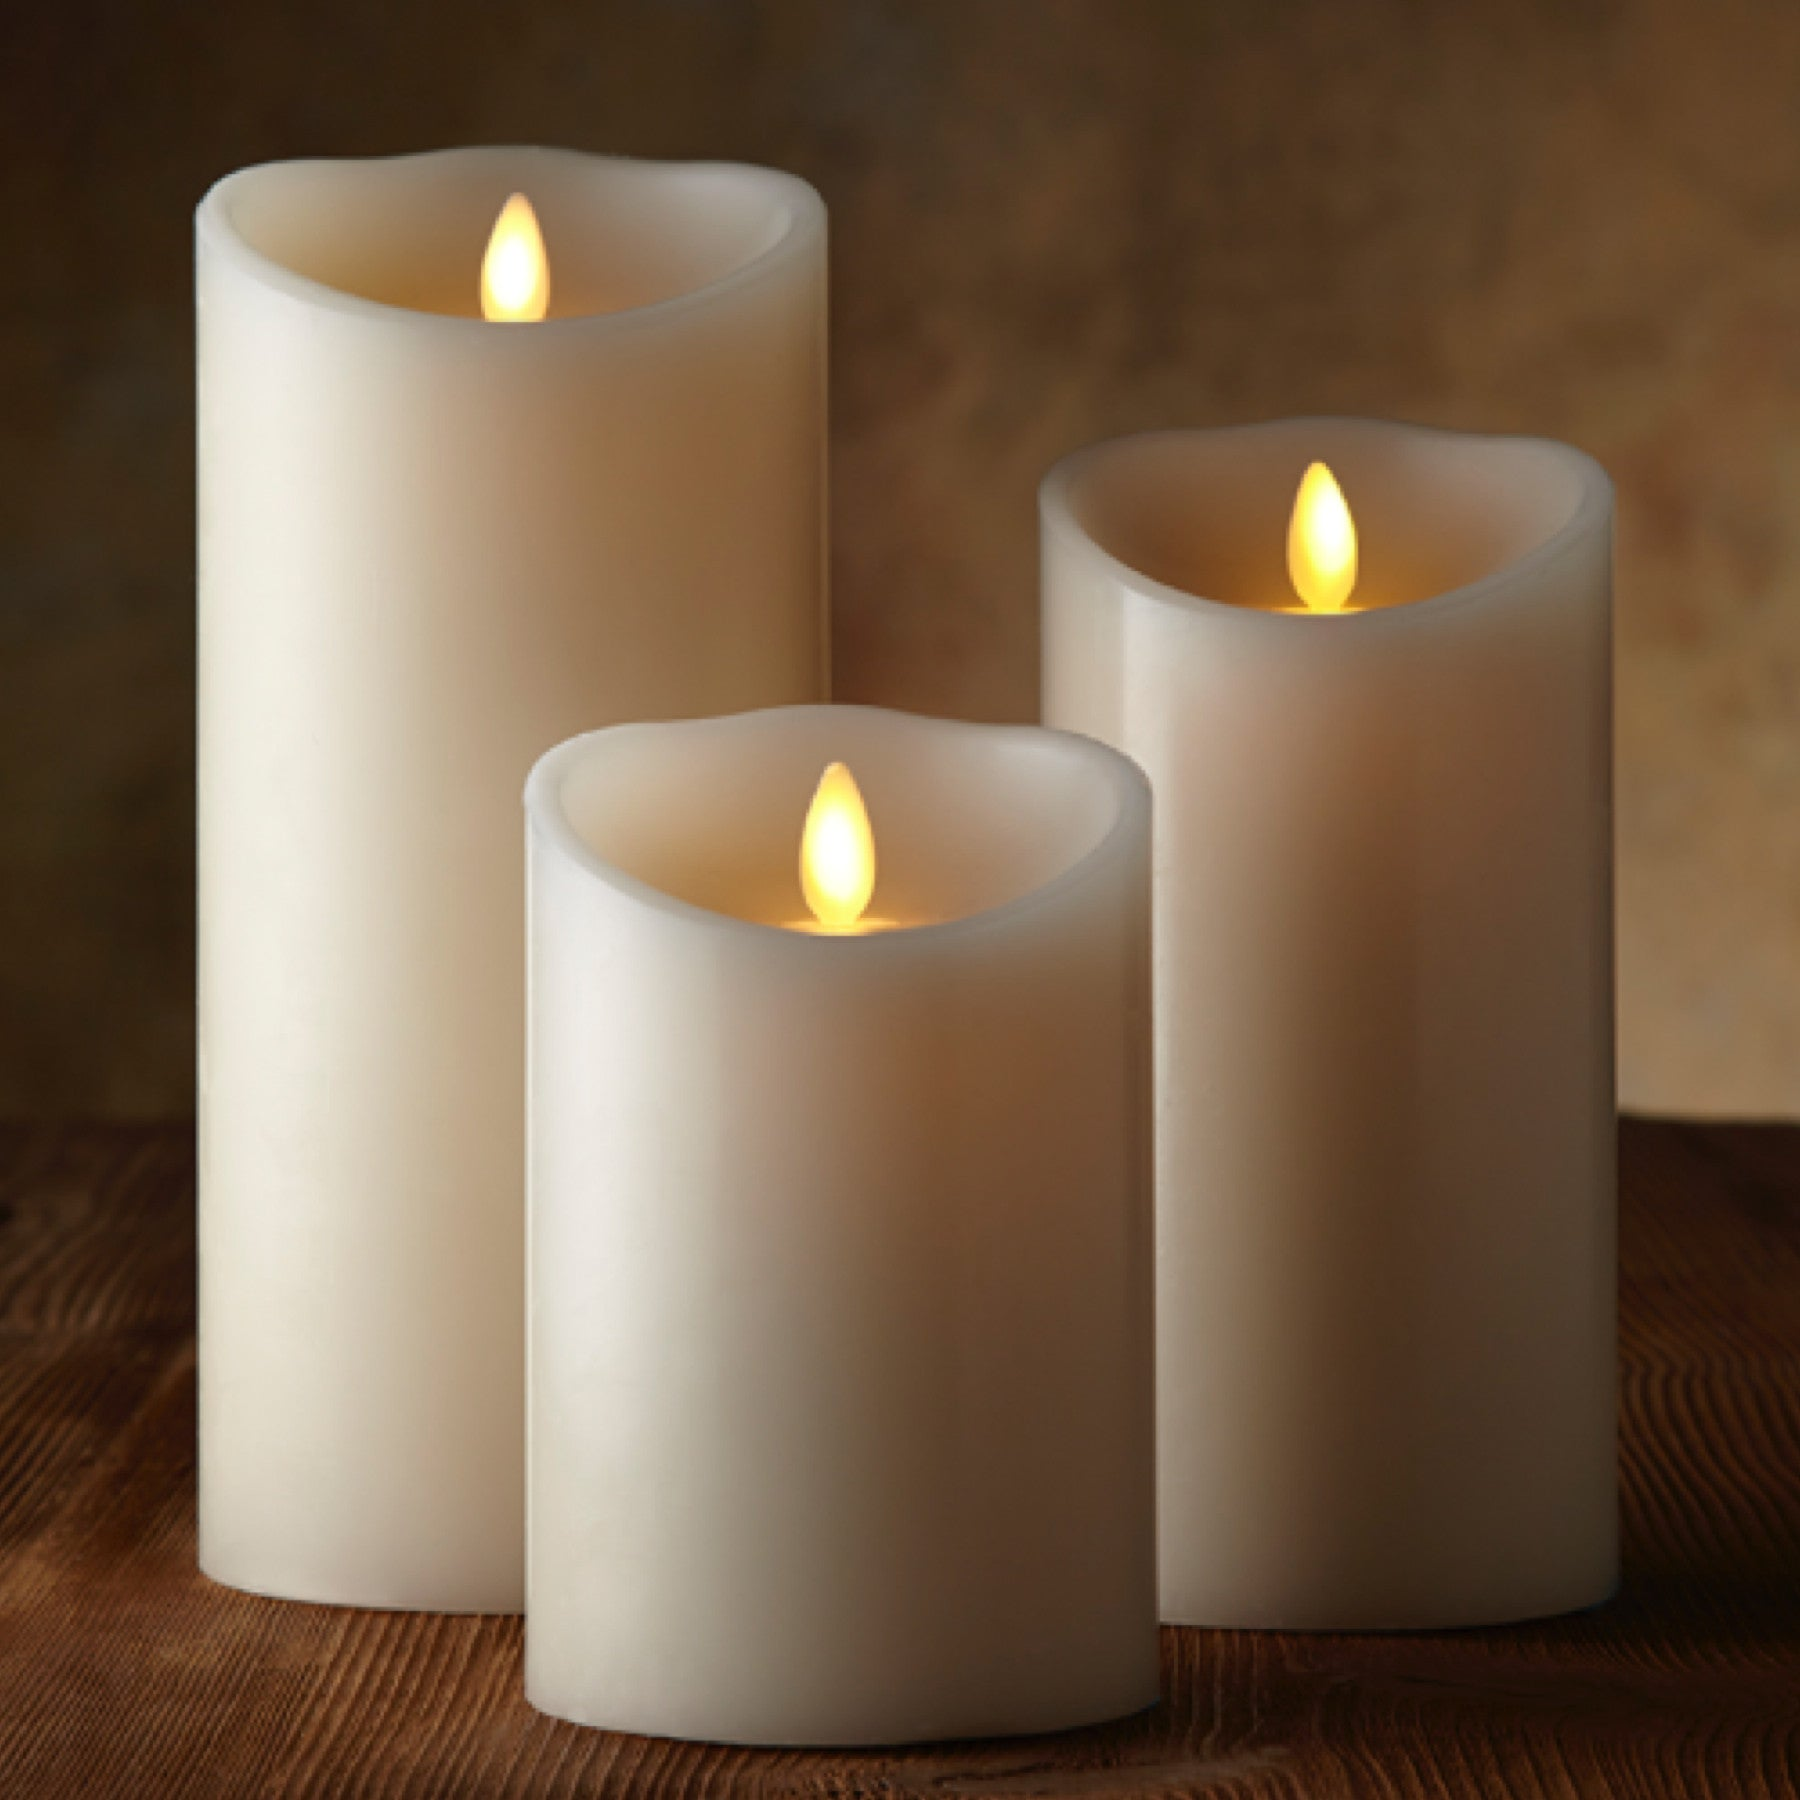 Tr95002 Premium Real Flame Effect Set Of 3 Candles With